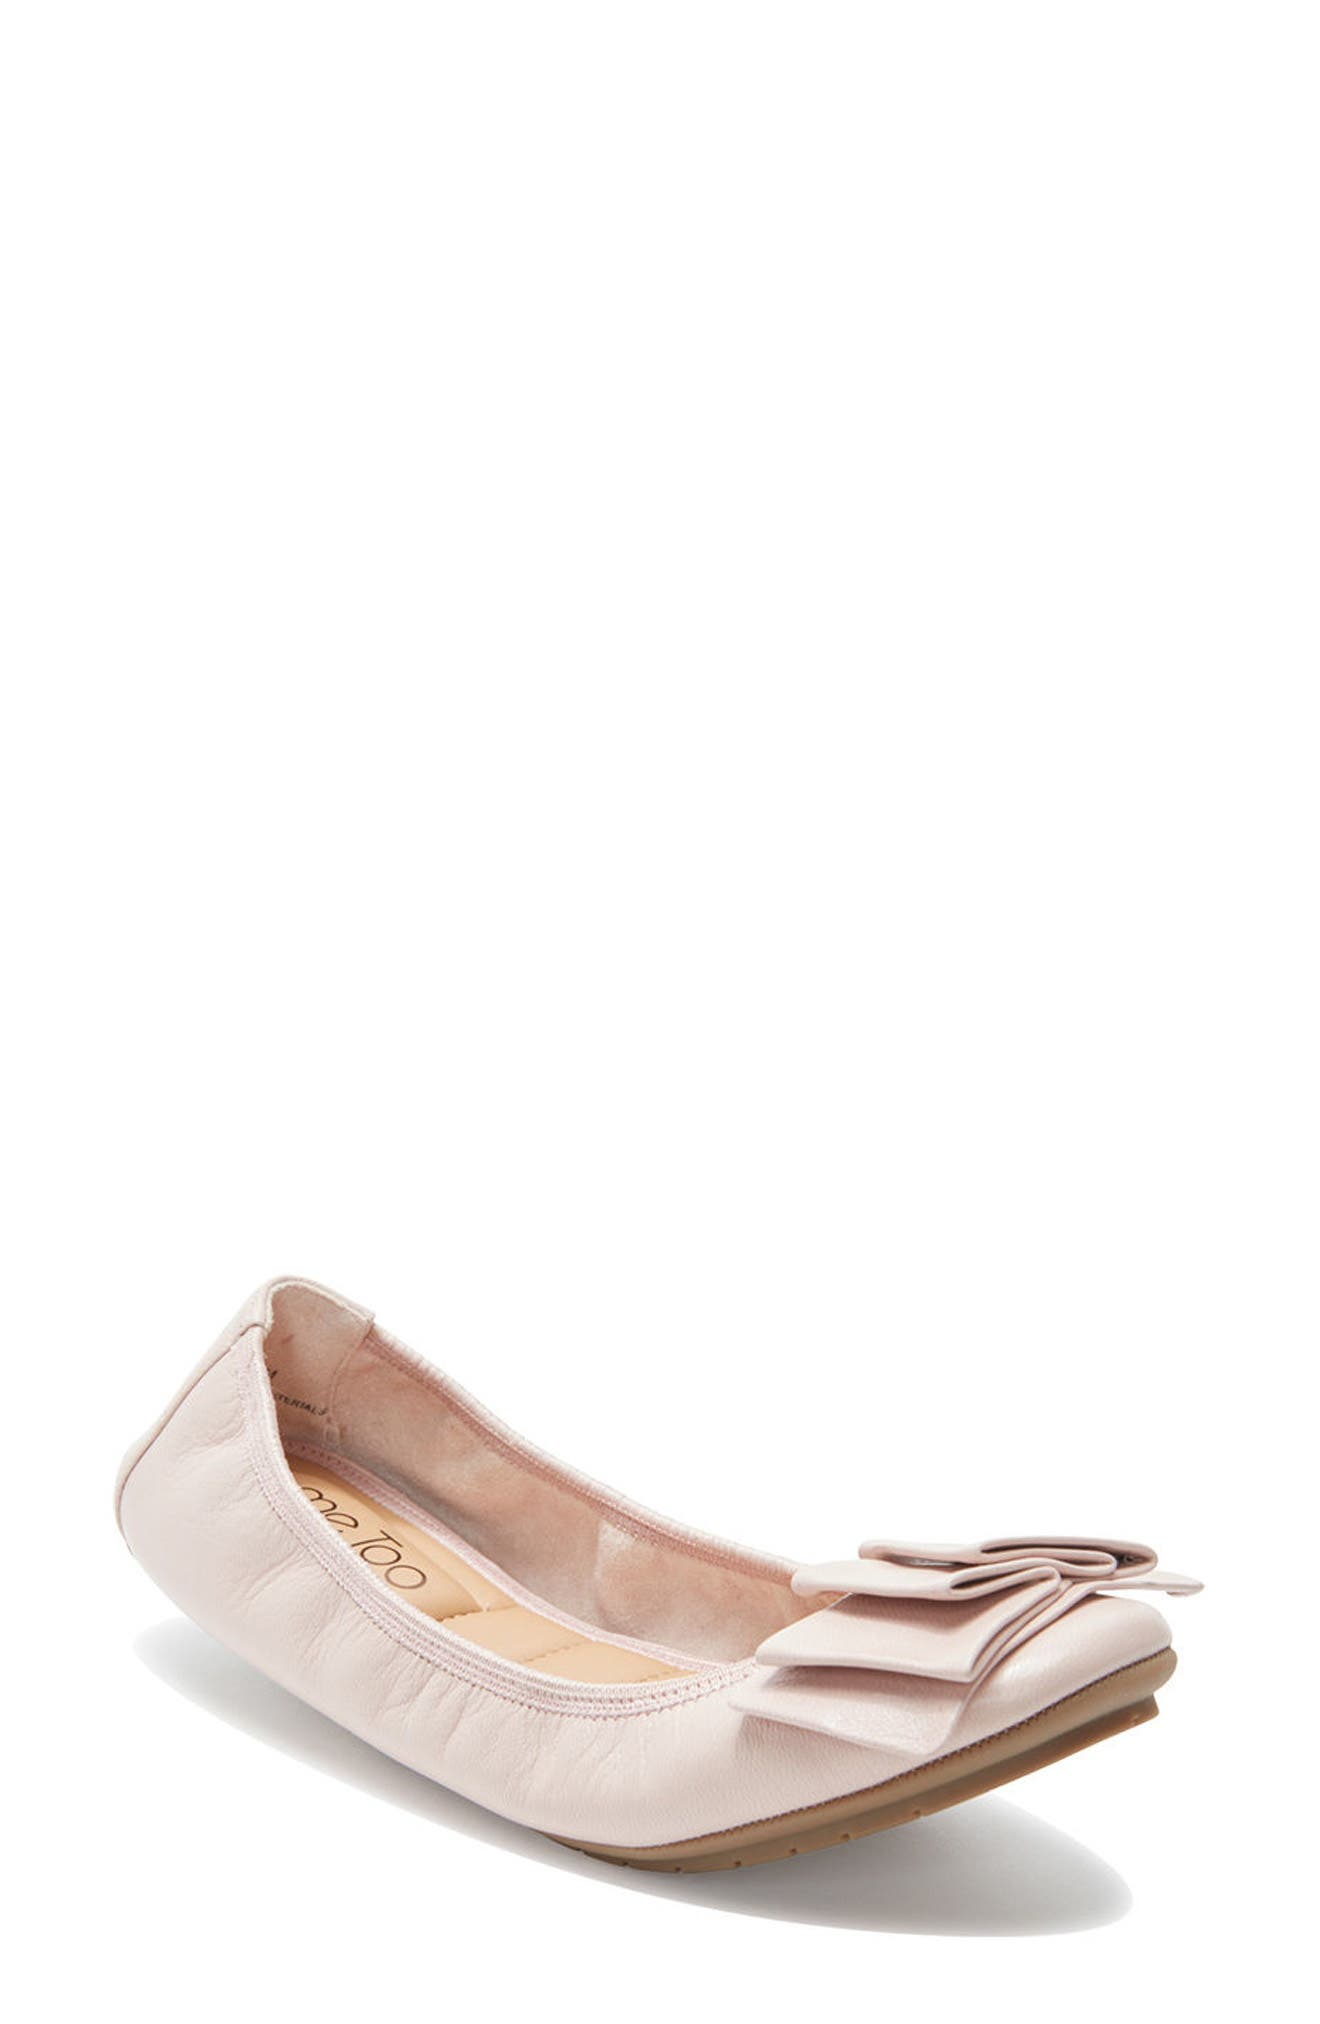 'Lilyana 2.0' Flat,                             Main thumbnail 1, color,                             Pink Leather